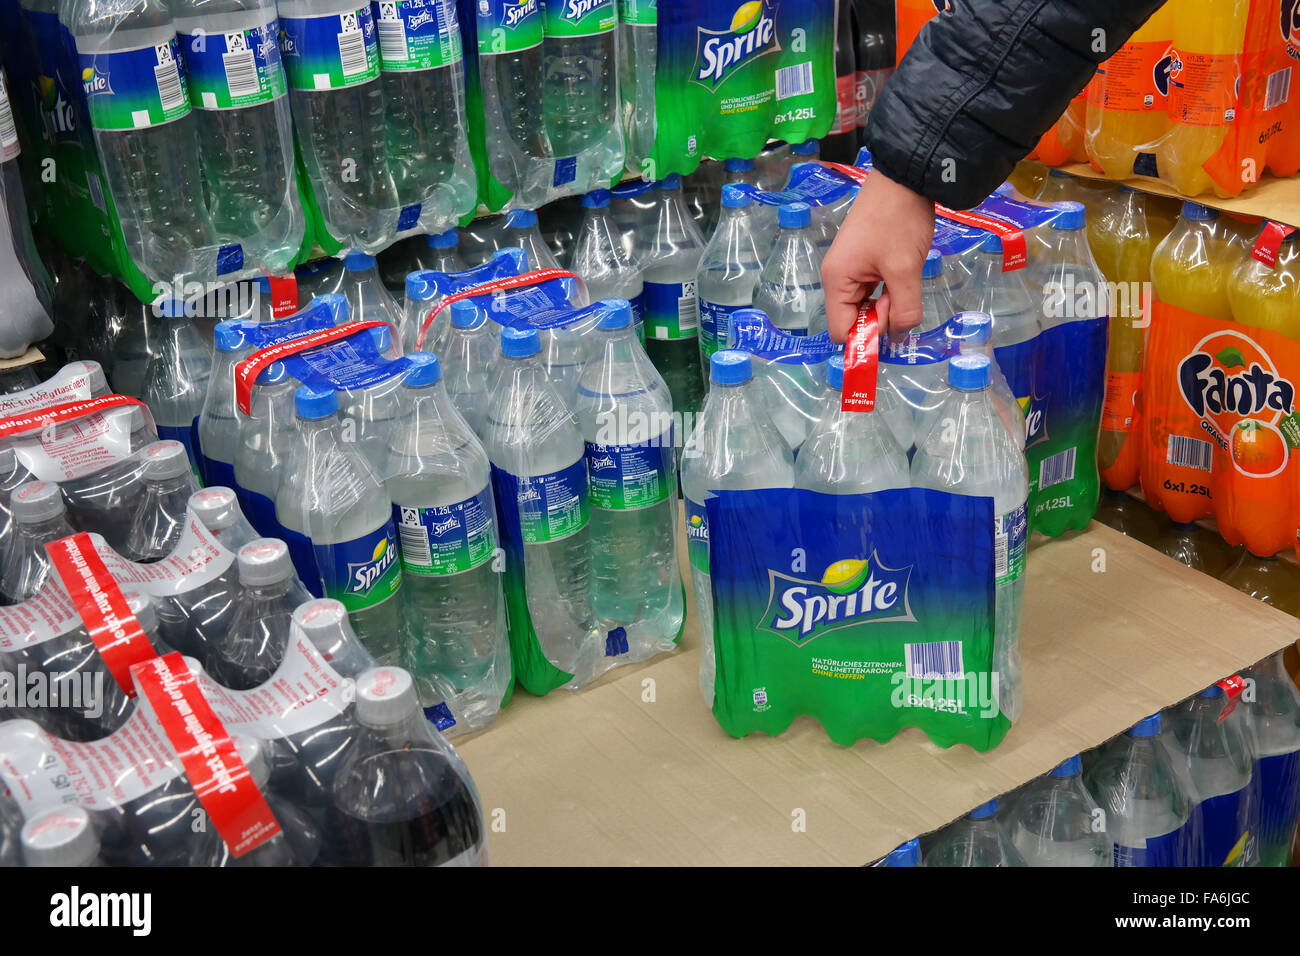 Sprite sixpack in a Supermarket - Stock Image